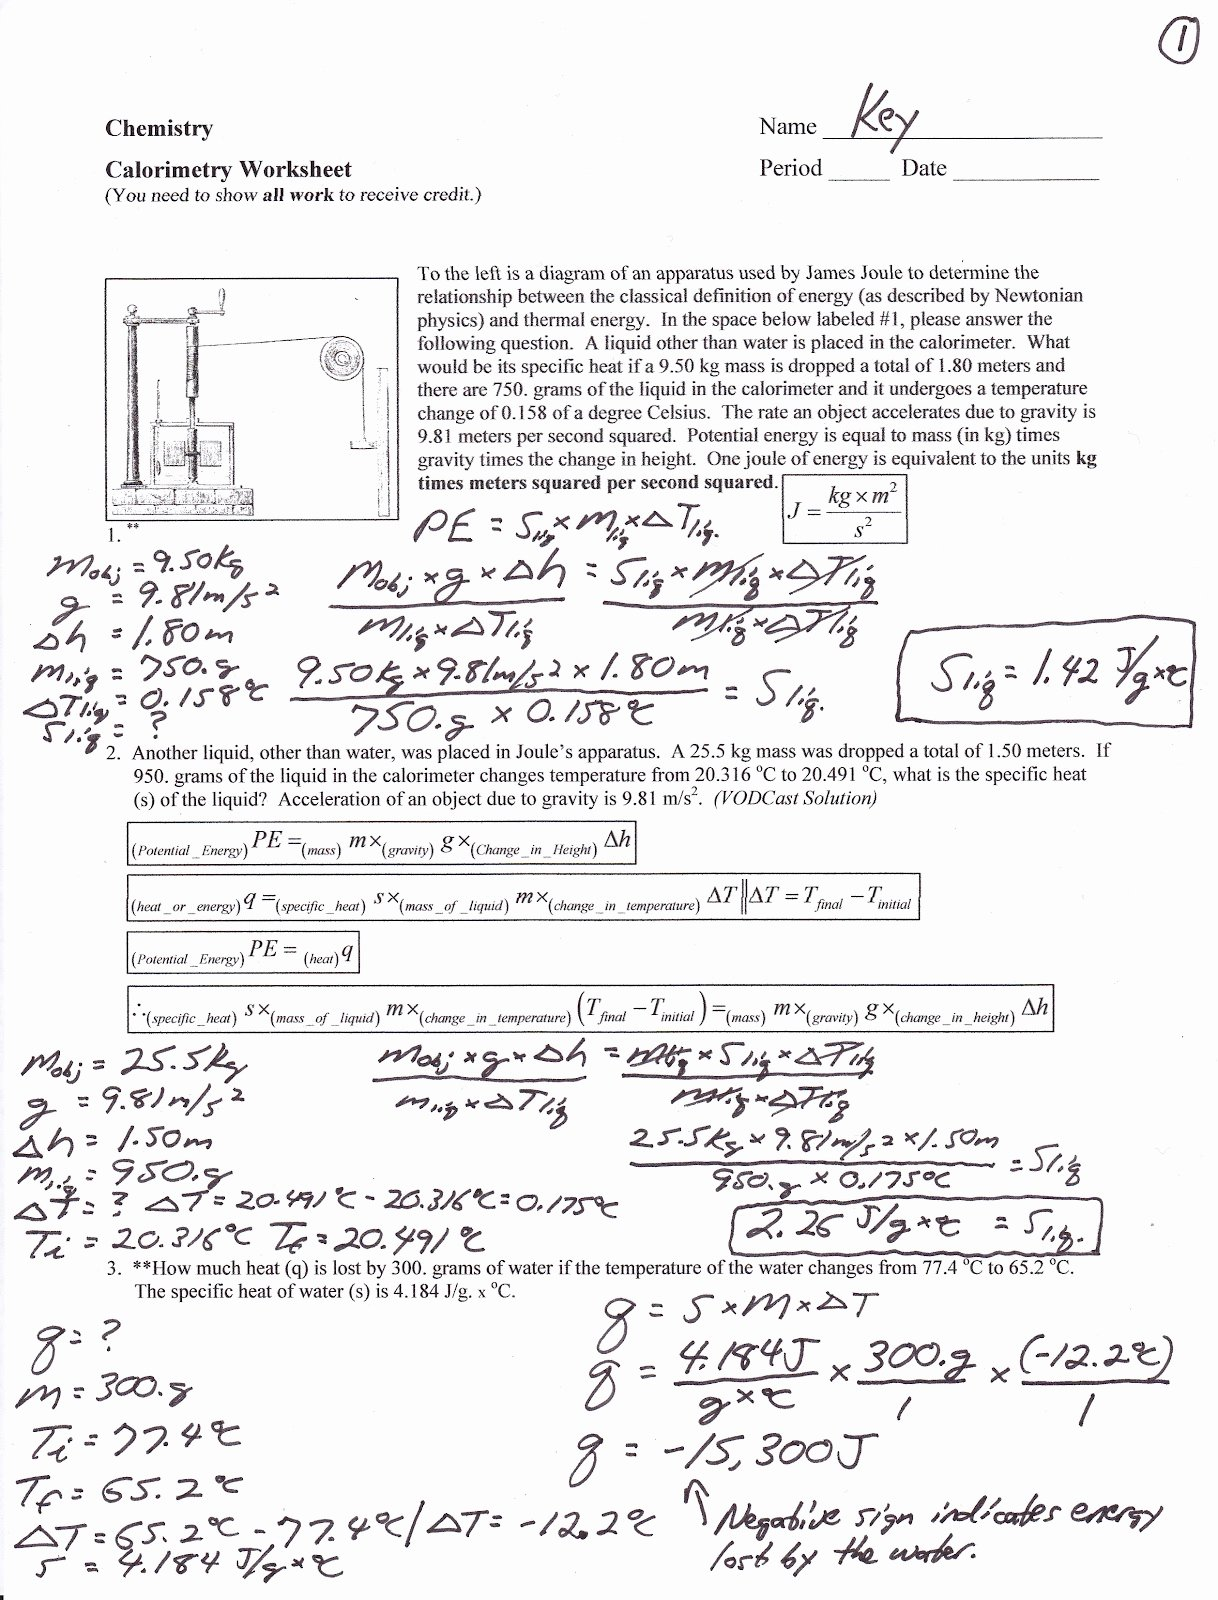 Calorimetry Worksheet Answer Key Awesome Mr Brueckner S Chemistry Class 2012 2013 Frompo